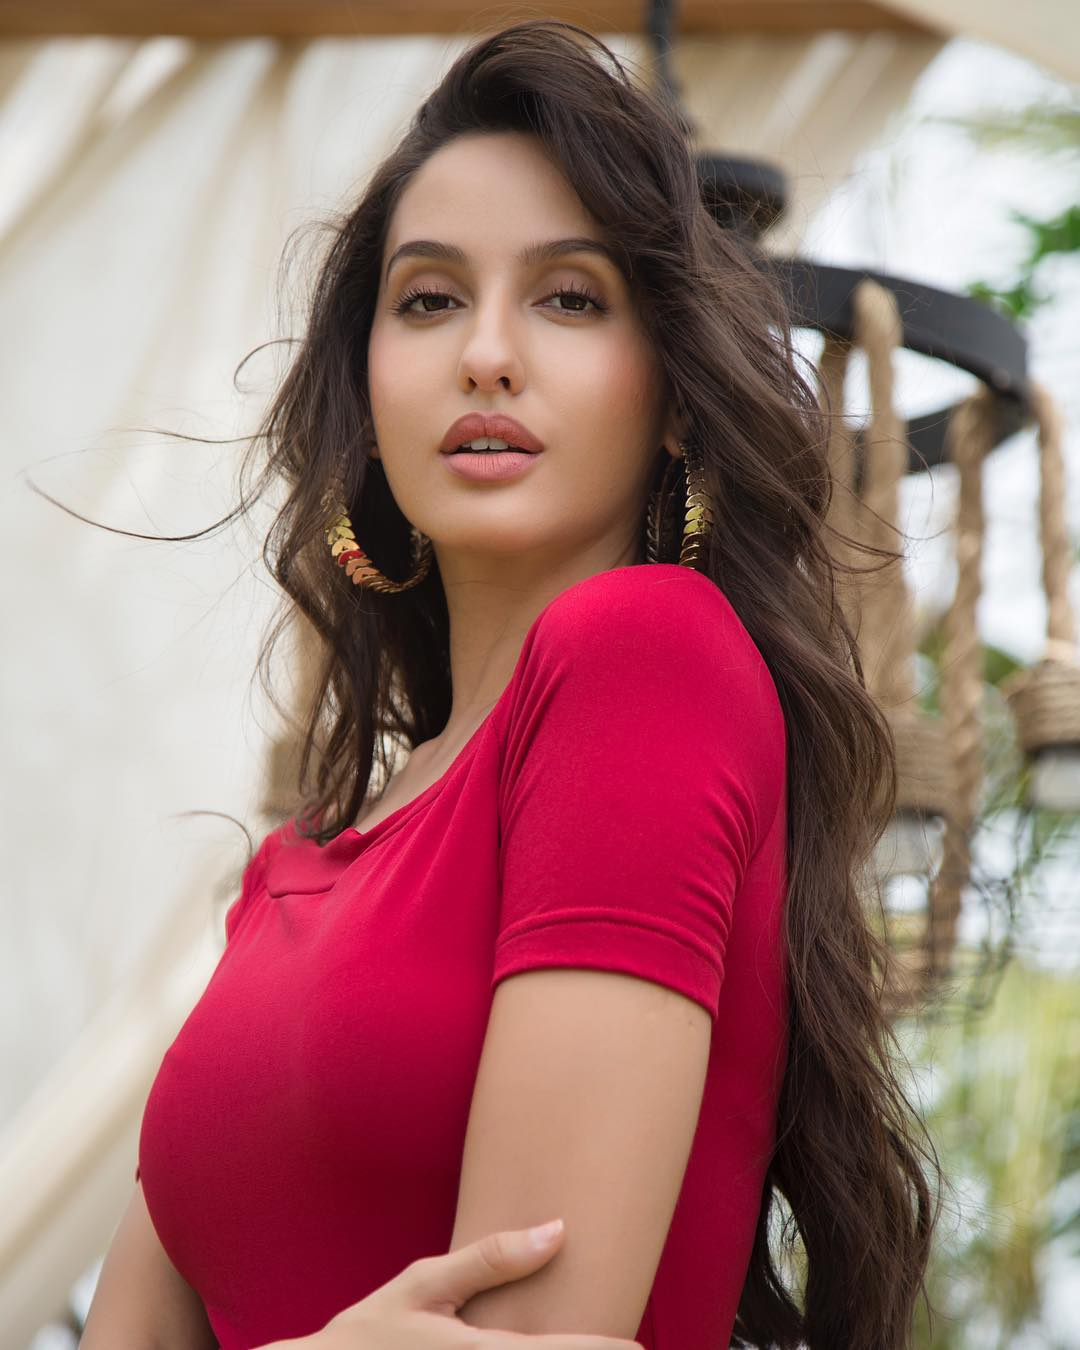 Nora Fatehi Wallpapers 1080P Hd Best Pictures, Images &Amp; Photos